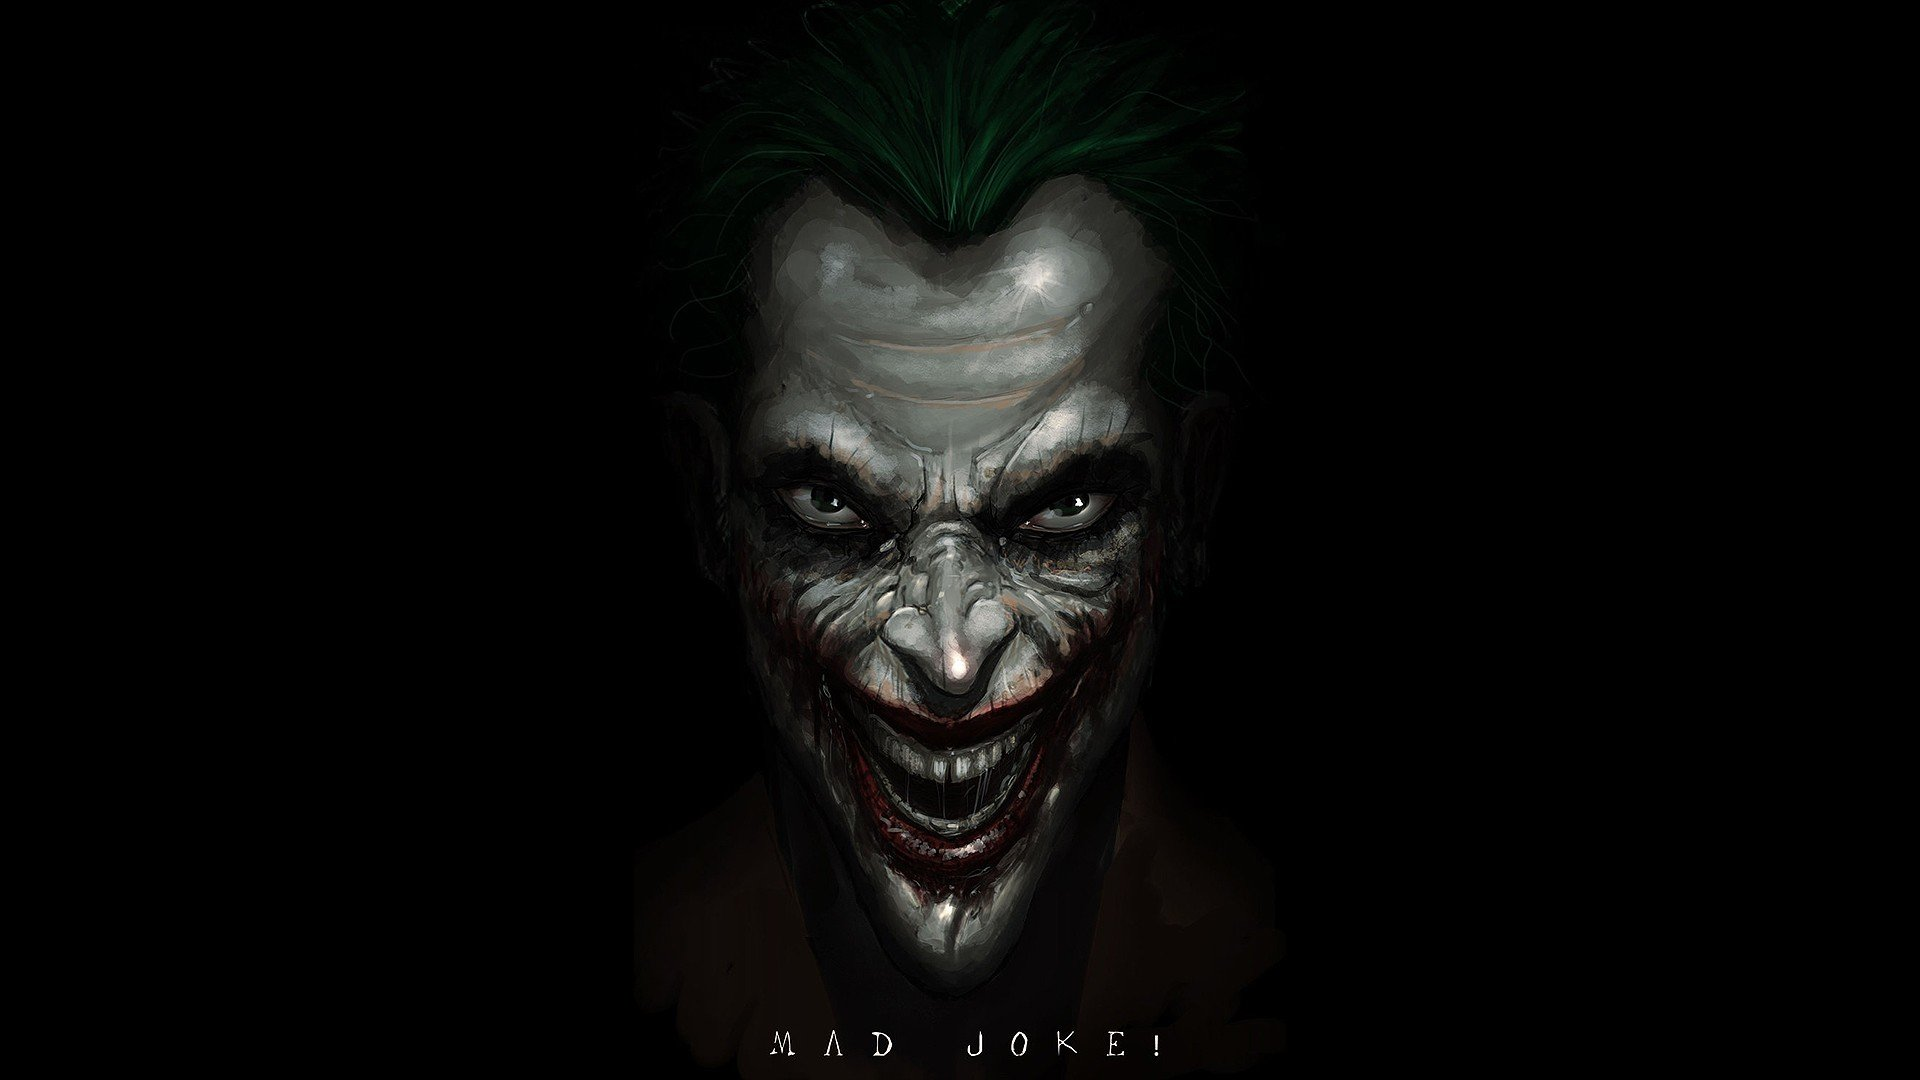 joker wallpapers 1920x1080 full hd 1080p desktop backgrounds